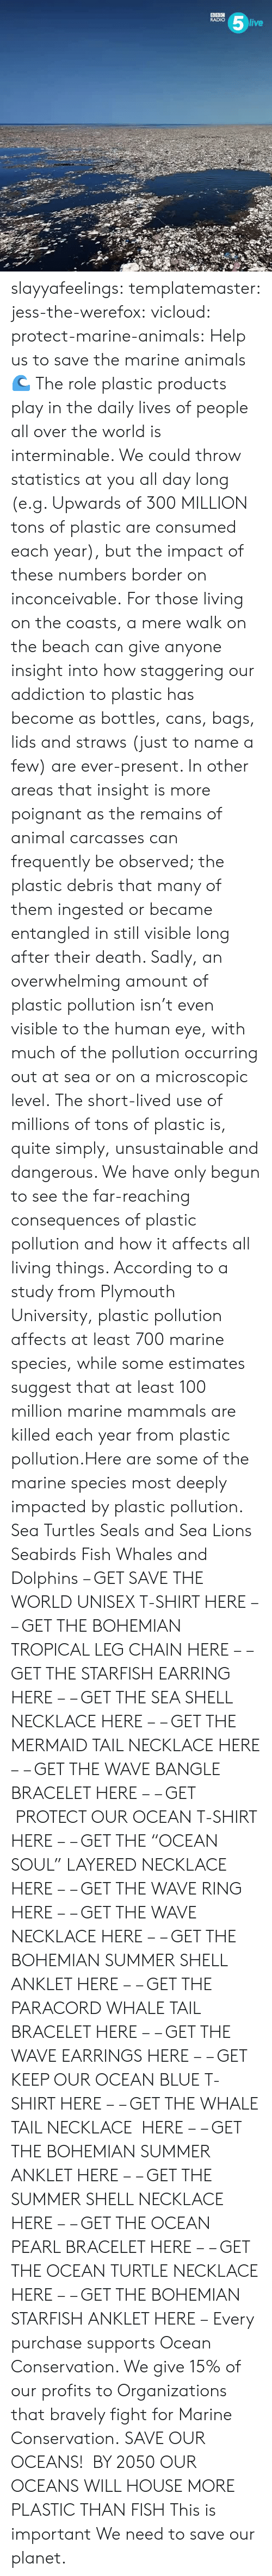 "Animals, Gif, and Radio: RADIO  ive slayyafeelings:  templatemaster:  jess-the-werefox: vicloud:   protect-marine-animals:  Help us to save the marine animals 🌊 The role plastic products play in the daily lives of people all over the world is interminable. We could throw statistics at you all day long (e.g. Upwards of 300 MILLION tons of plastic are consumed each year), but the impact of these numbers border on inconceivable. For those living on the coasts, a mere walk on the beach can give anyone insight into how staggering our addiction to plastic has become as bottles, cans, bags, lids and straws (just to name a few) are ever-present. In other areas that insight is more poignant as the remains of animal carcasses can frequently be observed; the plastic debris that many of them ingested or became entangled in still visible long after their death. Sadly, an overwhelming amount of plastic pollution isn't even visible to the human eye, with much of the pollution occurring out at sea or on a microscopic level. The short-lived use of millions of tons of plastic is, quite simply, unsustainable and dangerous. We have only begun to see the far-reaching consequences of plastic pollution and how it affects all living things. According to a study from Plymouth University, plastic pollution affects at least 700 marine species, while some estimates suggest that at least 100 million marine mammals are killed each year from plastic pollution.Here are some of the marine species most deeply impacted by plastic pollution. Sea Turtles Seals and Sea Lions Seabirds Fish Whales and Dolphins – GET SAVE THE WORLD UNISEX T-SHIRT HERE – – GET THE BOHEMIAN TROPICAL LEG CHAIN HERE – – GET THE STARFISH EARRING HERE – – GET THE SEA SHELL NECKLACE HERE – – GET THE MERMAID TAIL NECKLACE HERE – – GET THE WAVE BANGLE BRACELET HERE – – GET  PROTECT OUR OCEAN T-SHIRT HERE – – GET THE ""OCEAN SOUL"" LAYERED NECKLACE HERE – – GET THE WAVE RING HERE – – GET THE WAVE NECKLACE HERE – – GET THE BOHEMIAN SUMMER SHELL ANKLET HERE – – GET THE PARACORD WHALE TAIL BRACELET HERE – – GET THE WAVE EARRINGS HERE – – GET KEEP OUR OCEAN BLUE T-SHIRT HERE – – GET THE WHALE TAIL NECKLACE  HERE – – GET THE BOHEMIAN SUMMER ANKLET HERE – – GET THE SUMMER SHELL NECKLACE HERE – – GET THE OCEAN PEARL BRACELET HERE – – GET THE OCEAN TURTLE NECKLACE HERE – – GET THE BOHEMIAN STARFISH ANKLET HERE – Every purchase supports Ocean Conservation. We give 15% of our profits to Organizations that bravely fight for Marine Conservation.  SAVE OUR OCEANS!    BY 2050 OUR OCEANS WILL HOUSE MORE PLASTIC THAN FISH   This is important   We need to save our planet."